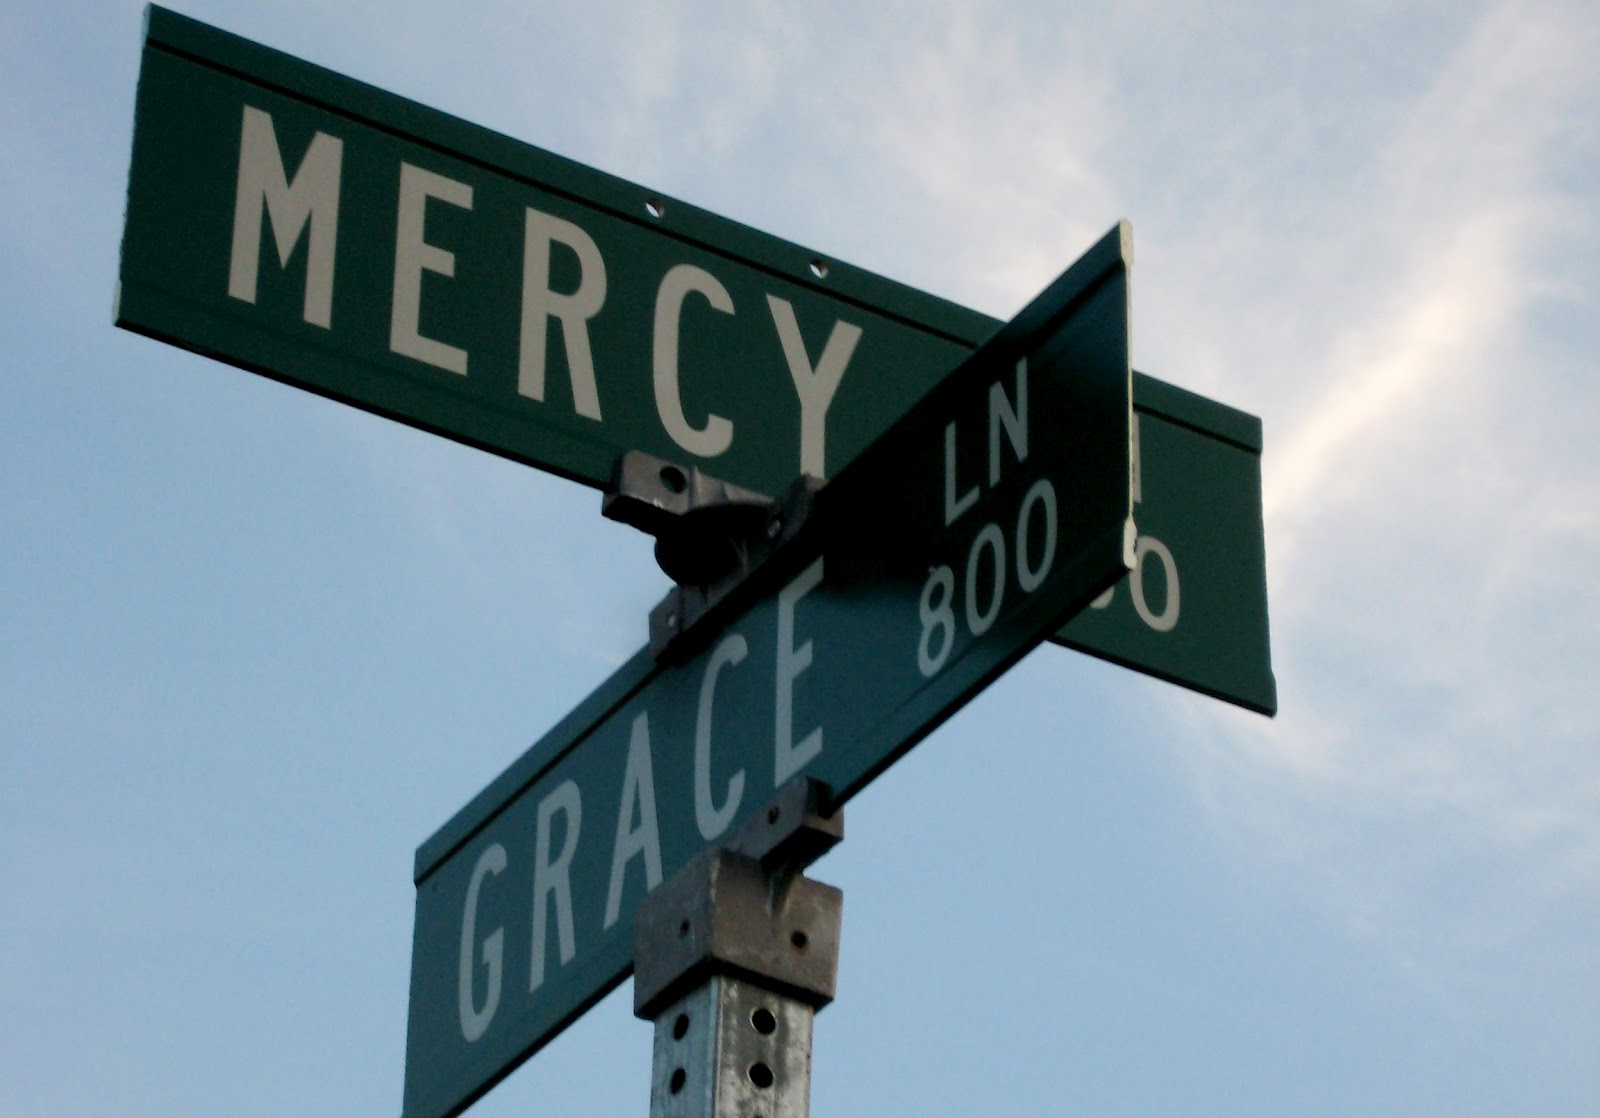 Take your stand on the corner of Grace and Mercy. Lots of people will pass by.